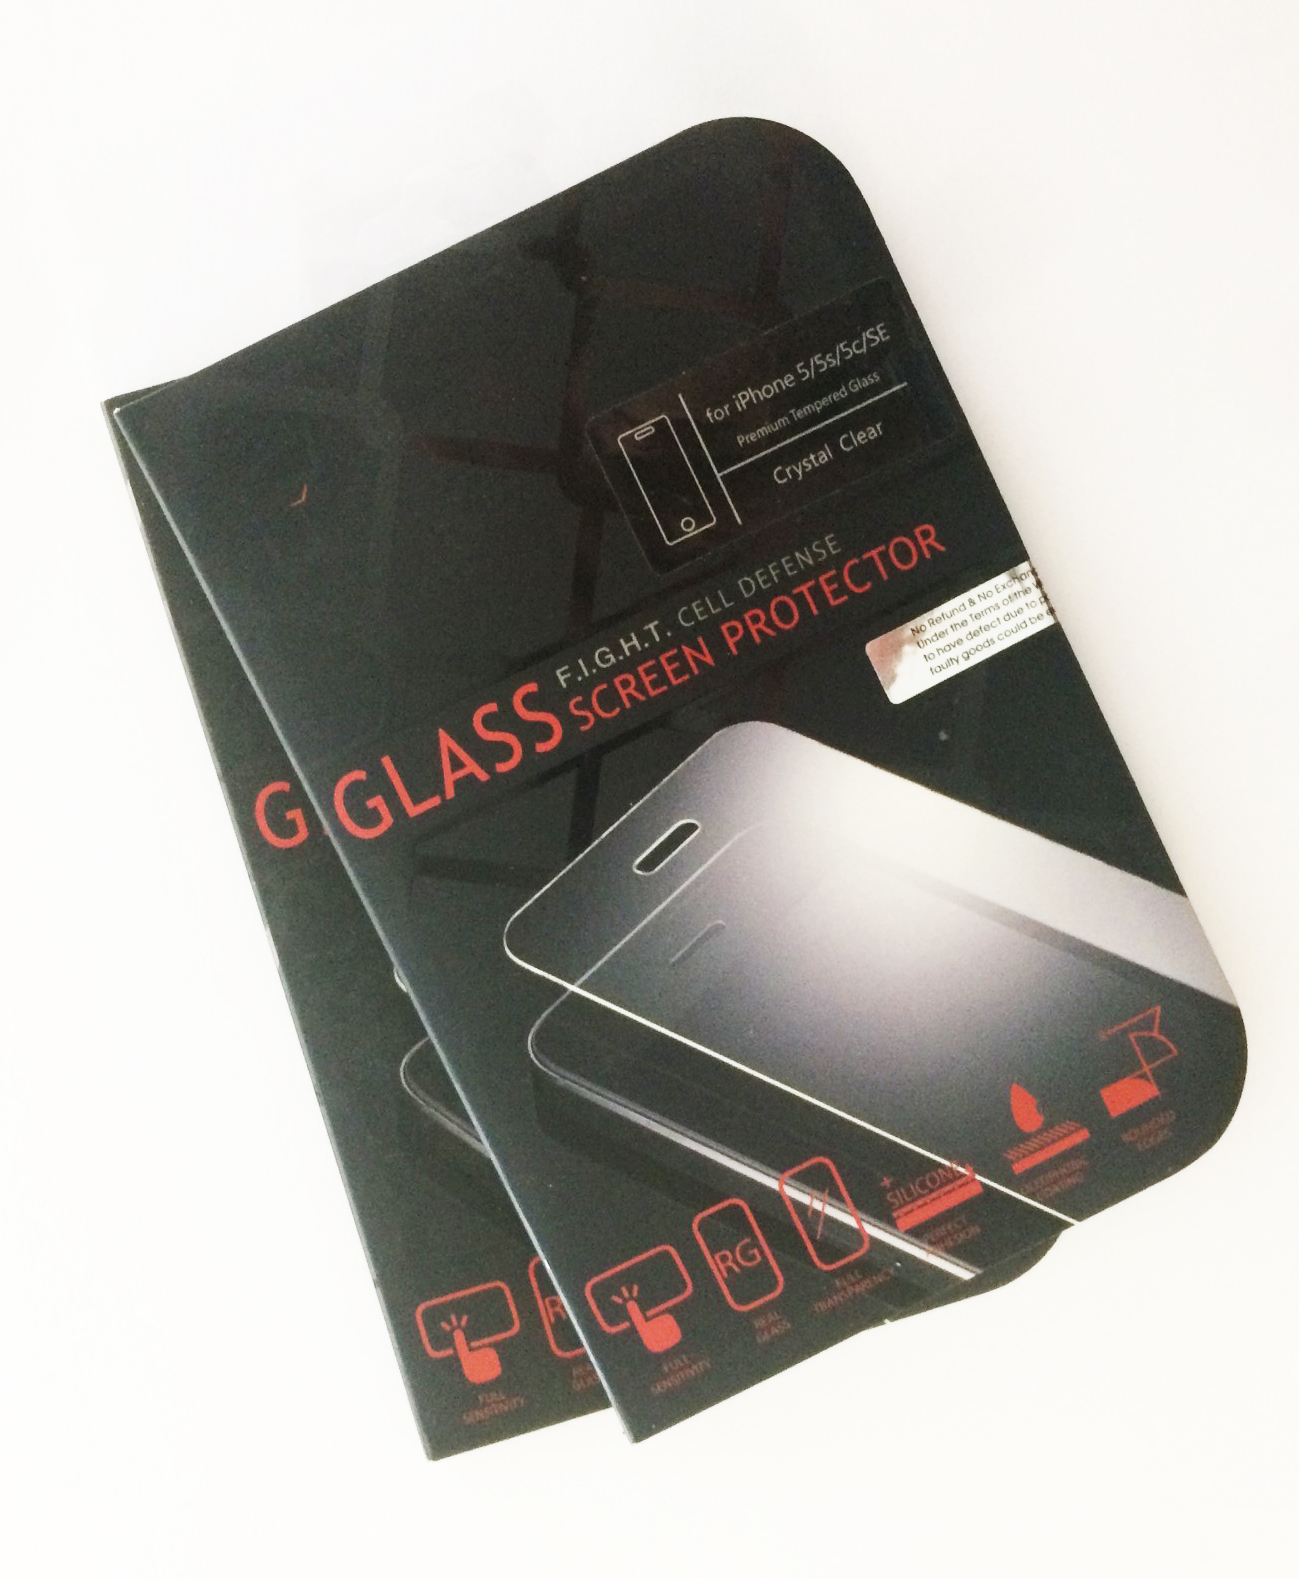 FIGHT Screen Protector.jpg